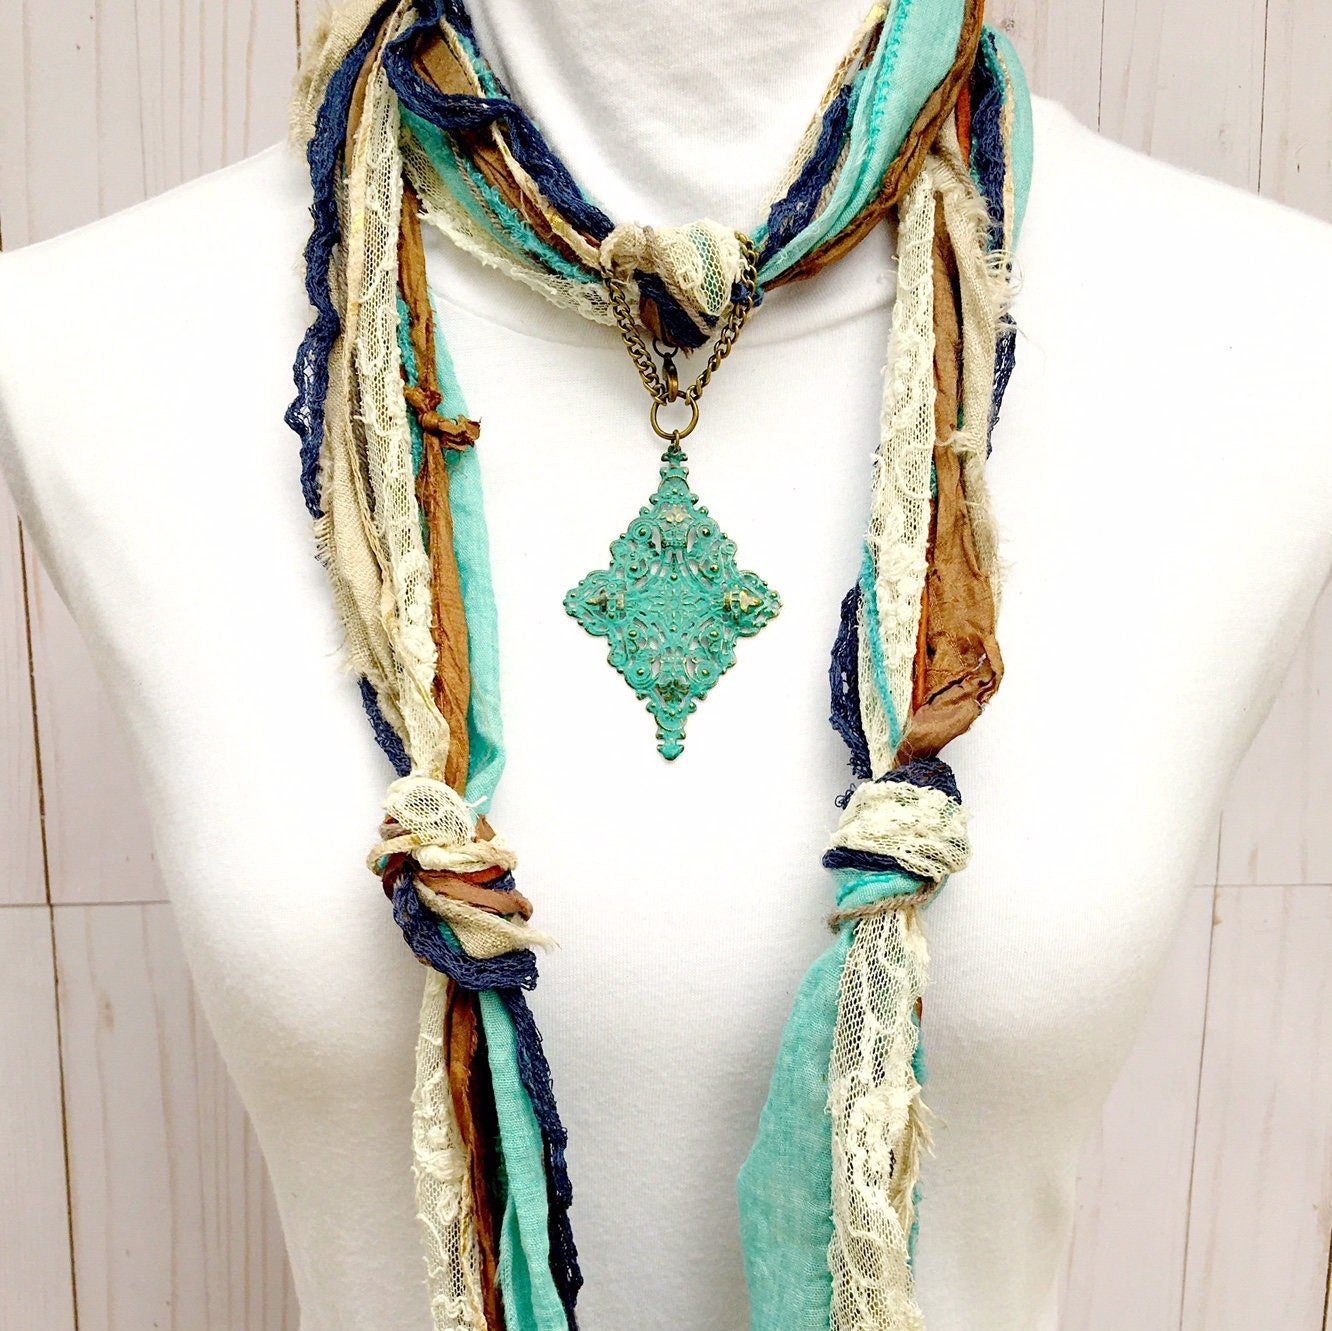 Turquoise scarf jewelry turquoise filigree pendant scarf turquoise scarf jewelry turquoise filigree pendant scarf necklace jewelry metal turquoise scarf pendant scarf ring scarf slide aloadofball Images